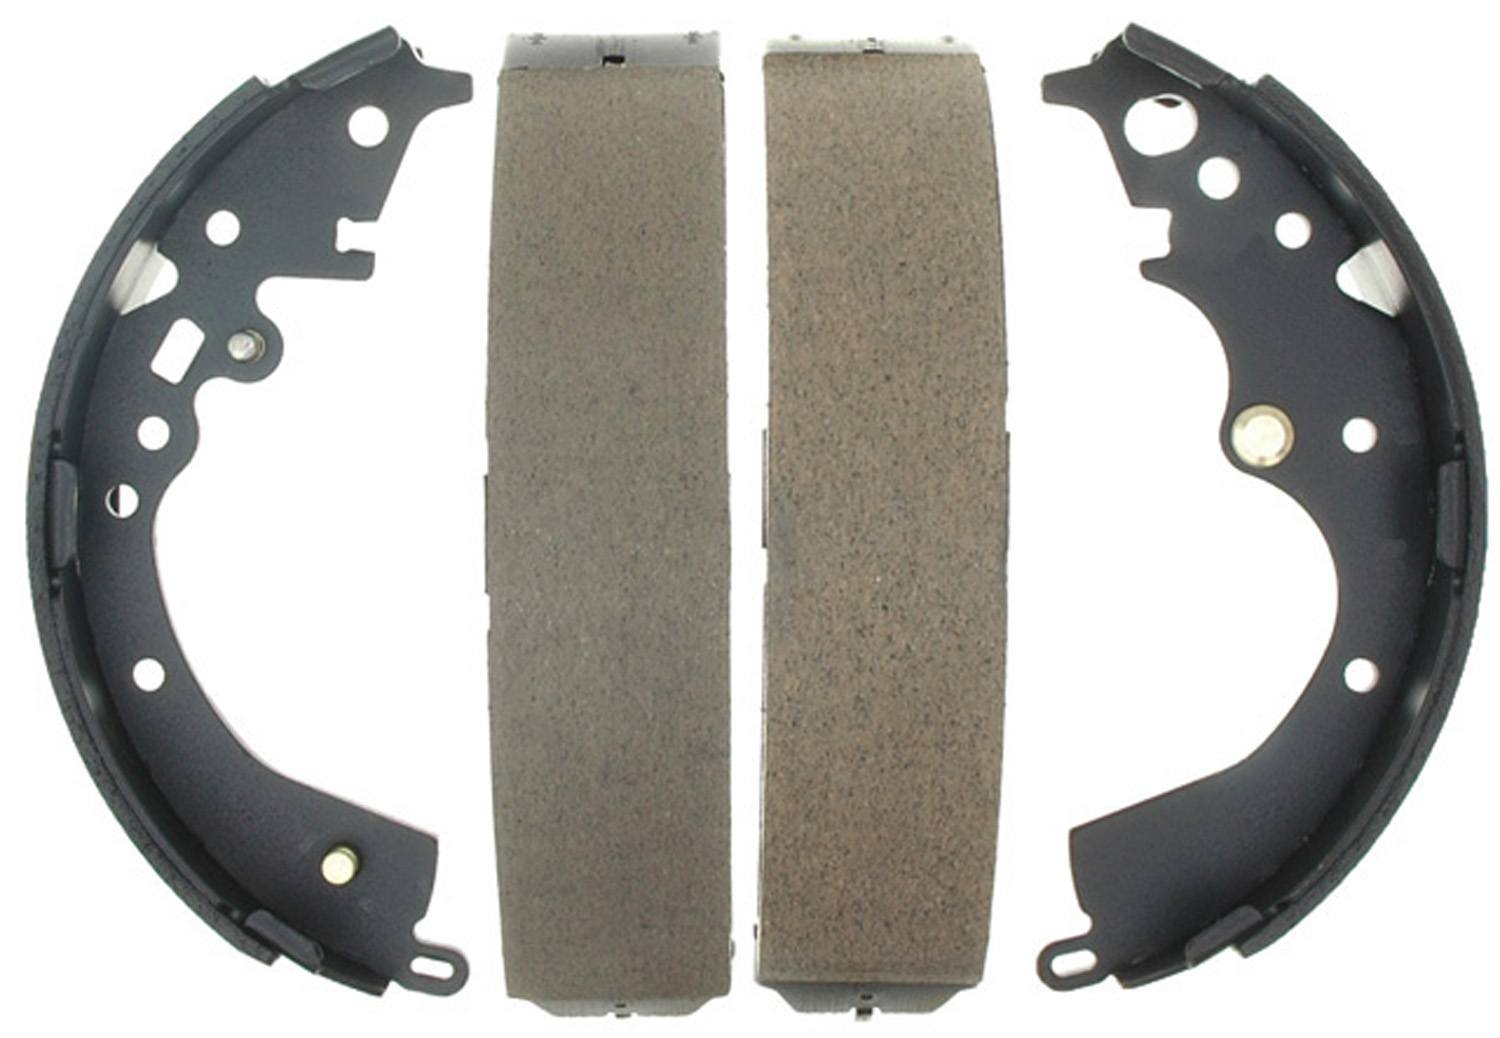 ACDELCO PROFESSIONAL BRAKES - Bonded Drum Brake Shoe (Rear) - ADU 17871B